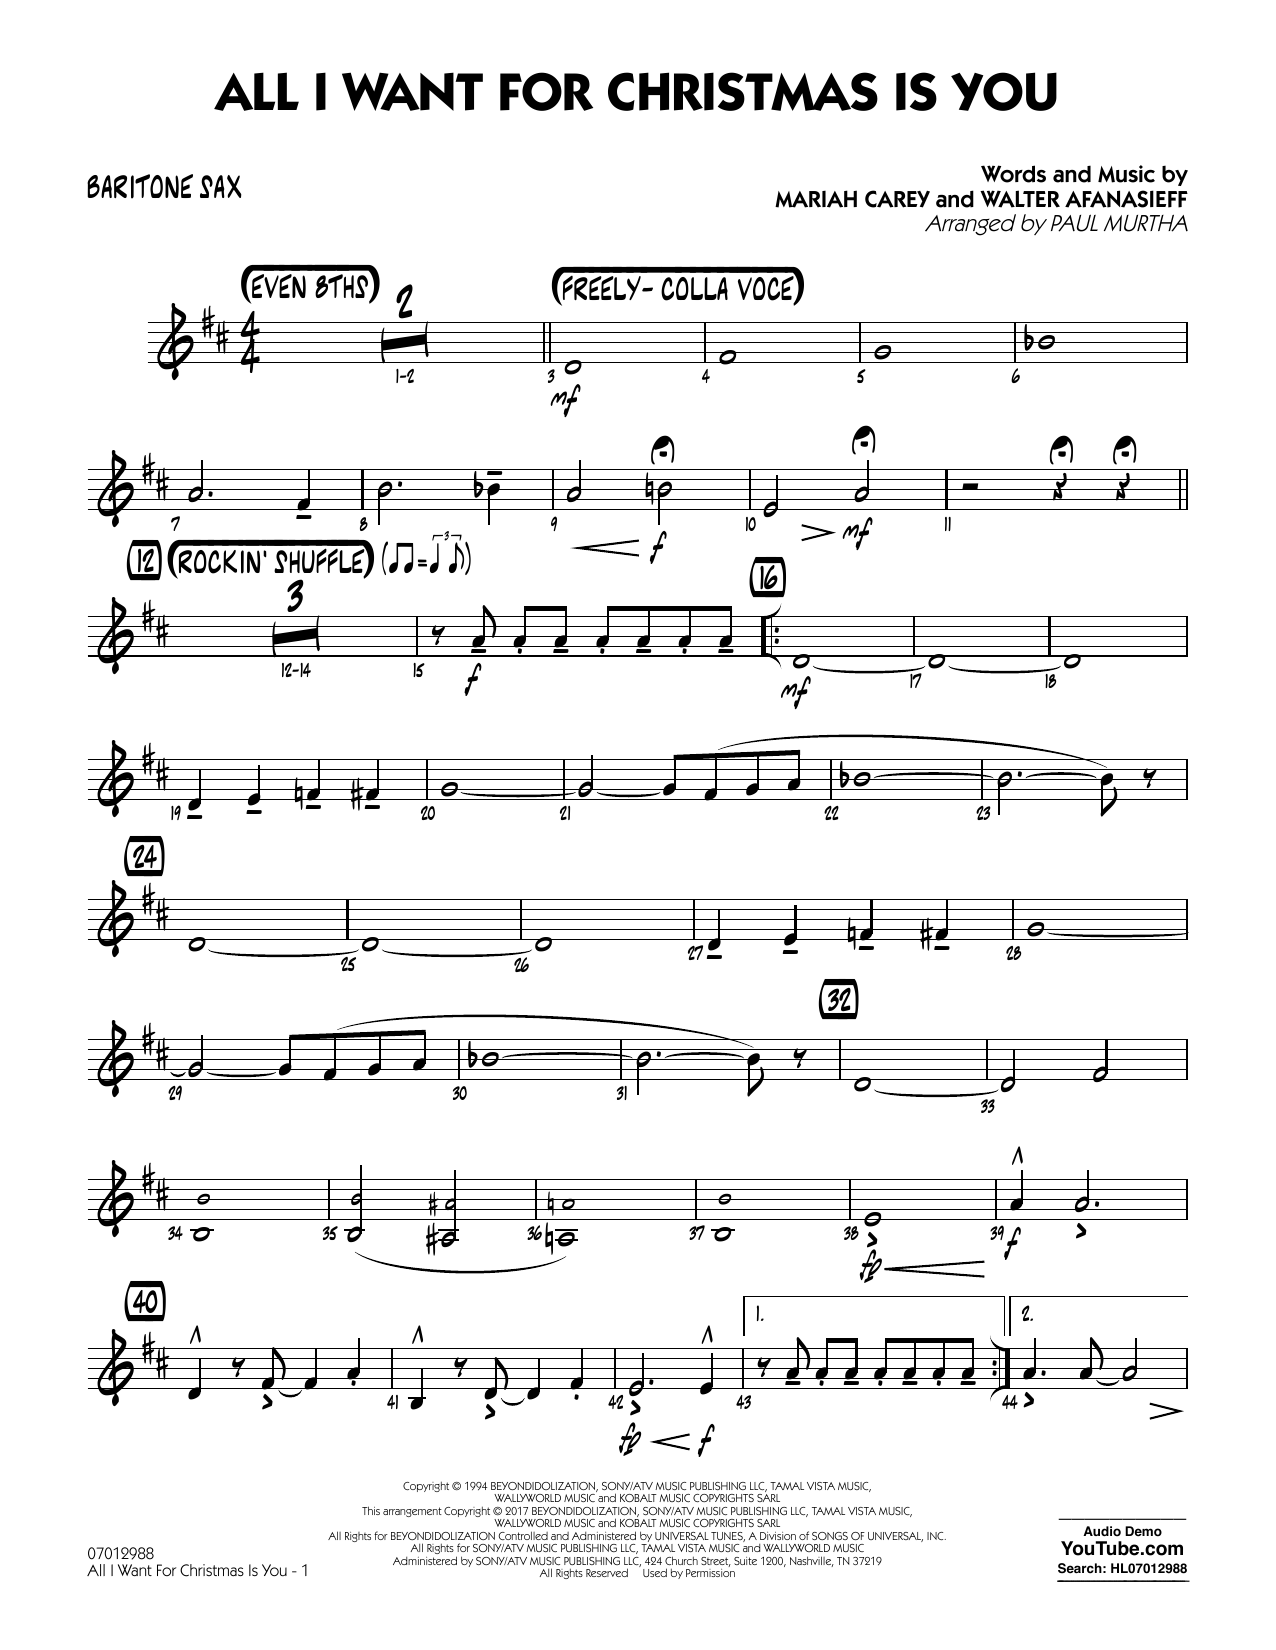 Paul Murtha All I Want for Christmas Is You - Baritone Sax sheet music notes and chords. Download Printable PDF.